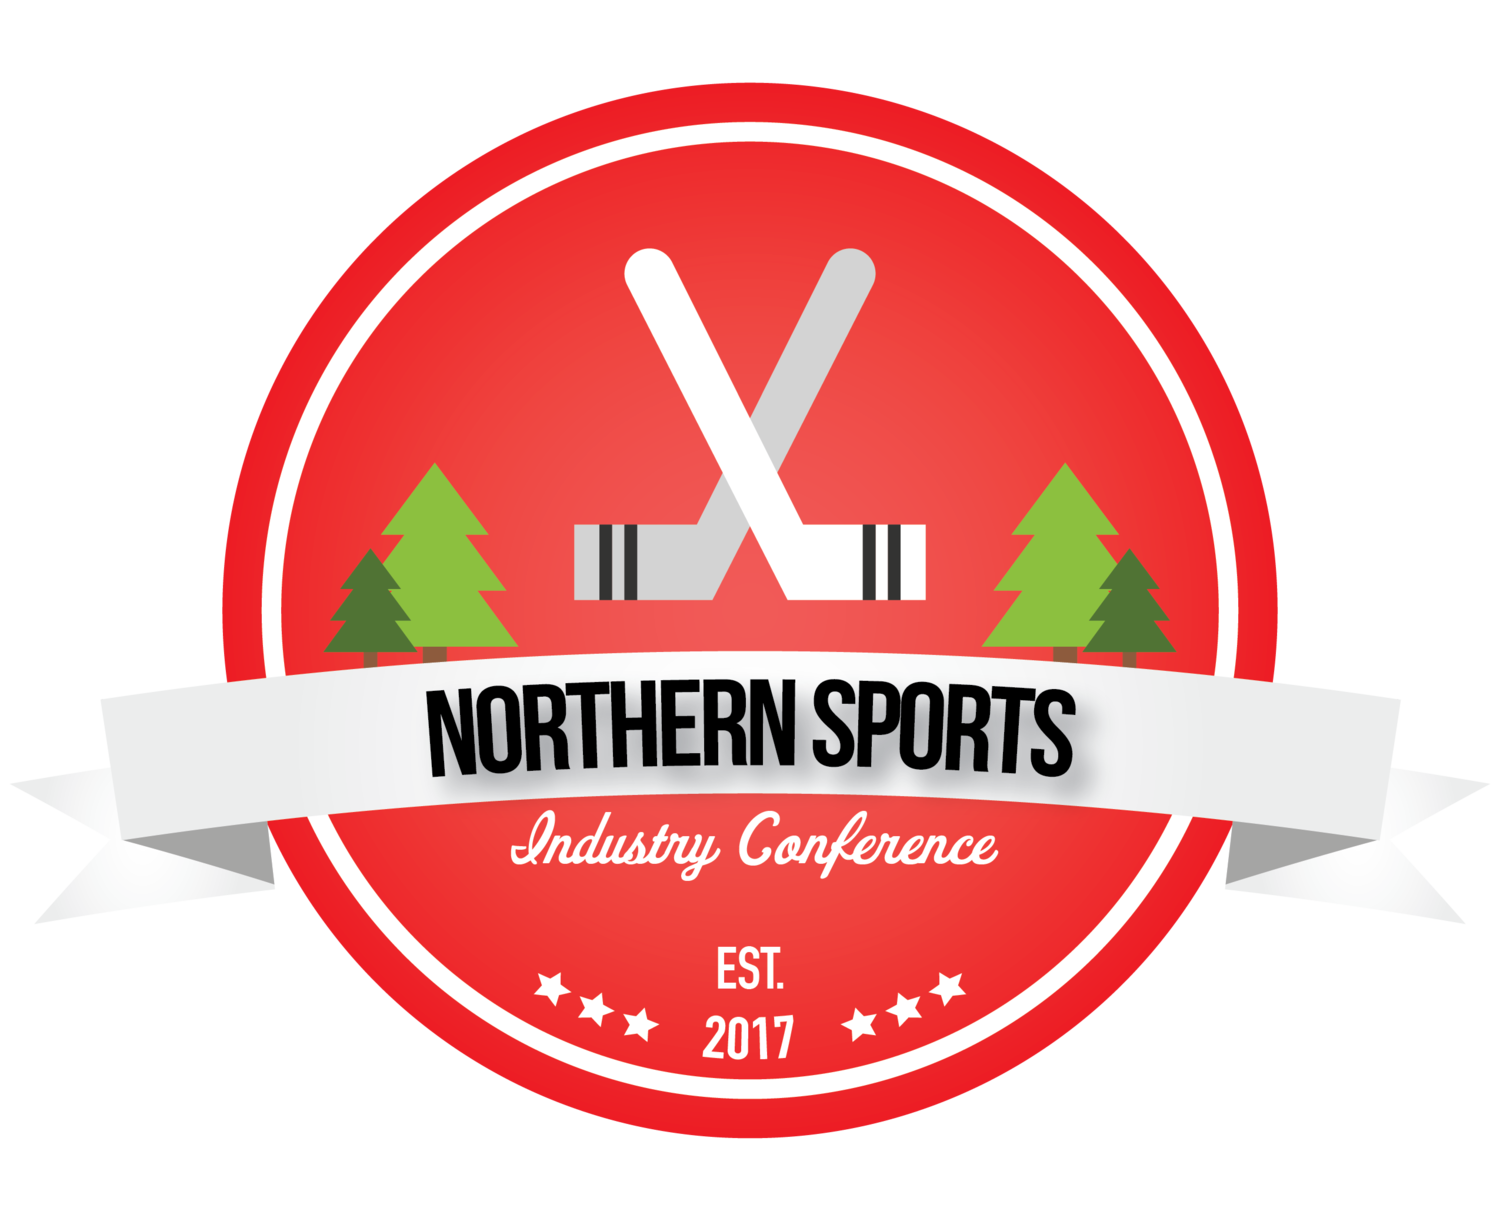 Northern Sports Industry Conference